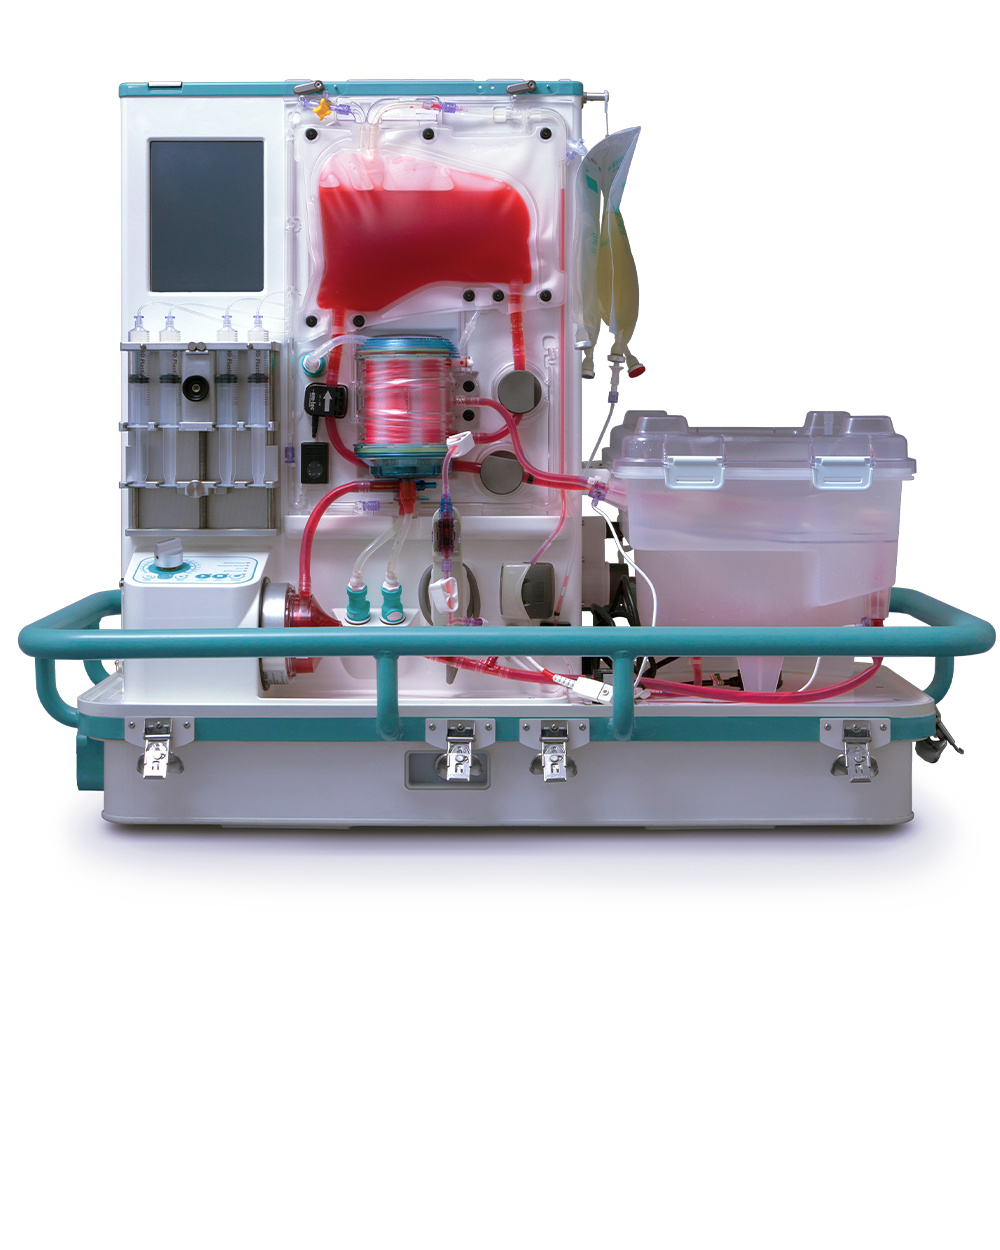 The OrganOx automated liver perfusion device